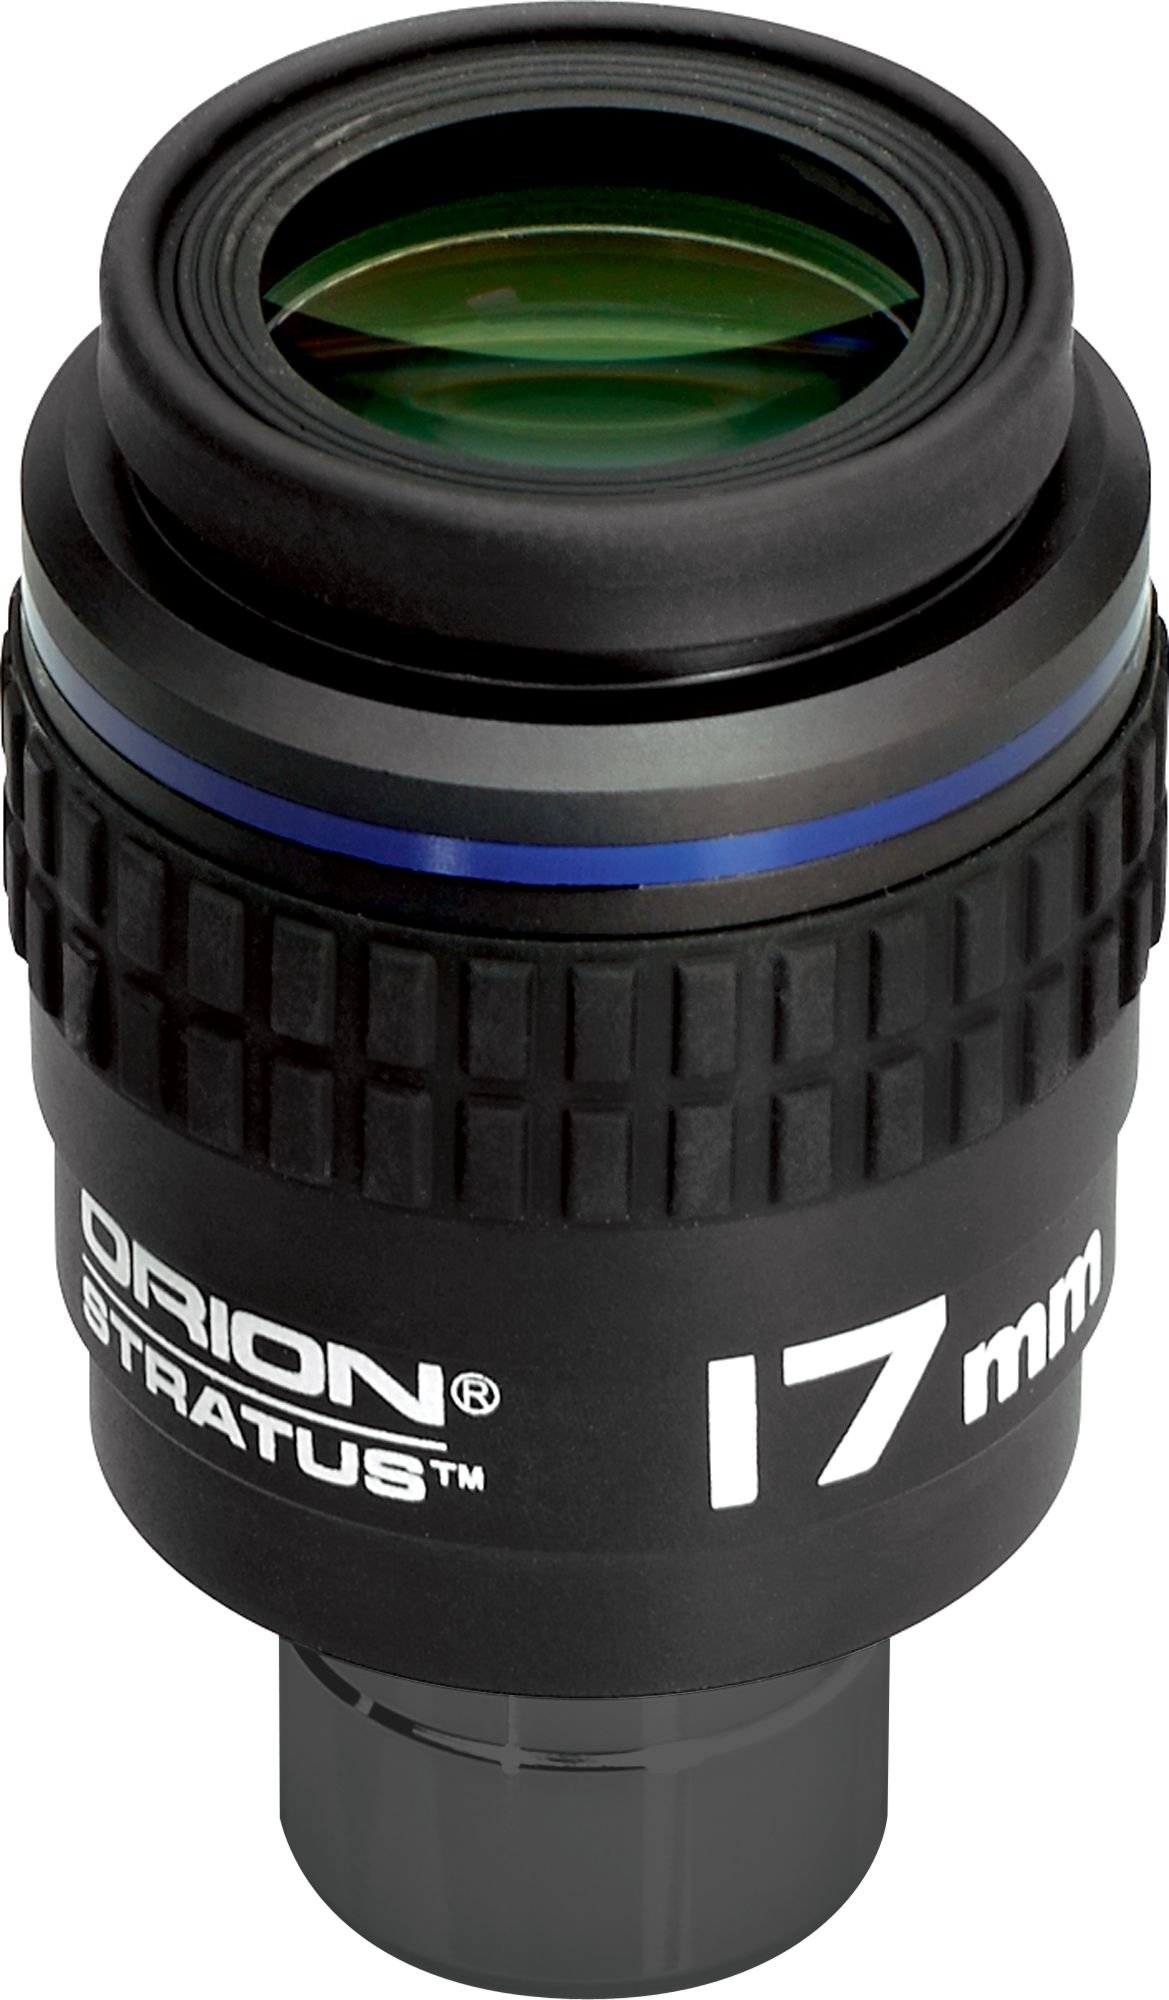 Orion 8245 17mm Stratus Wide-Field Eyepiece by Orion